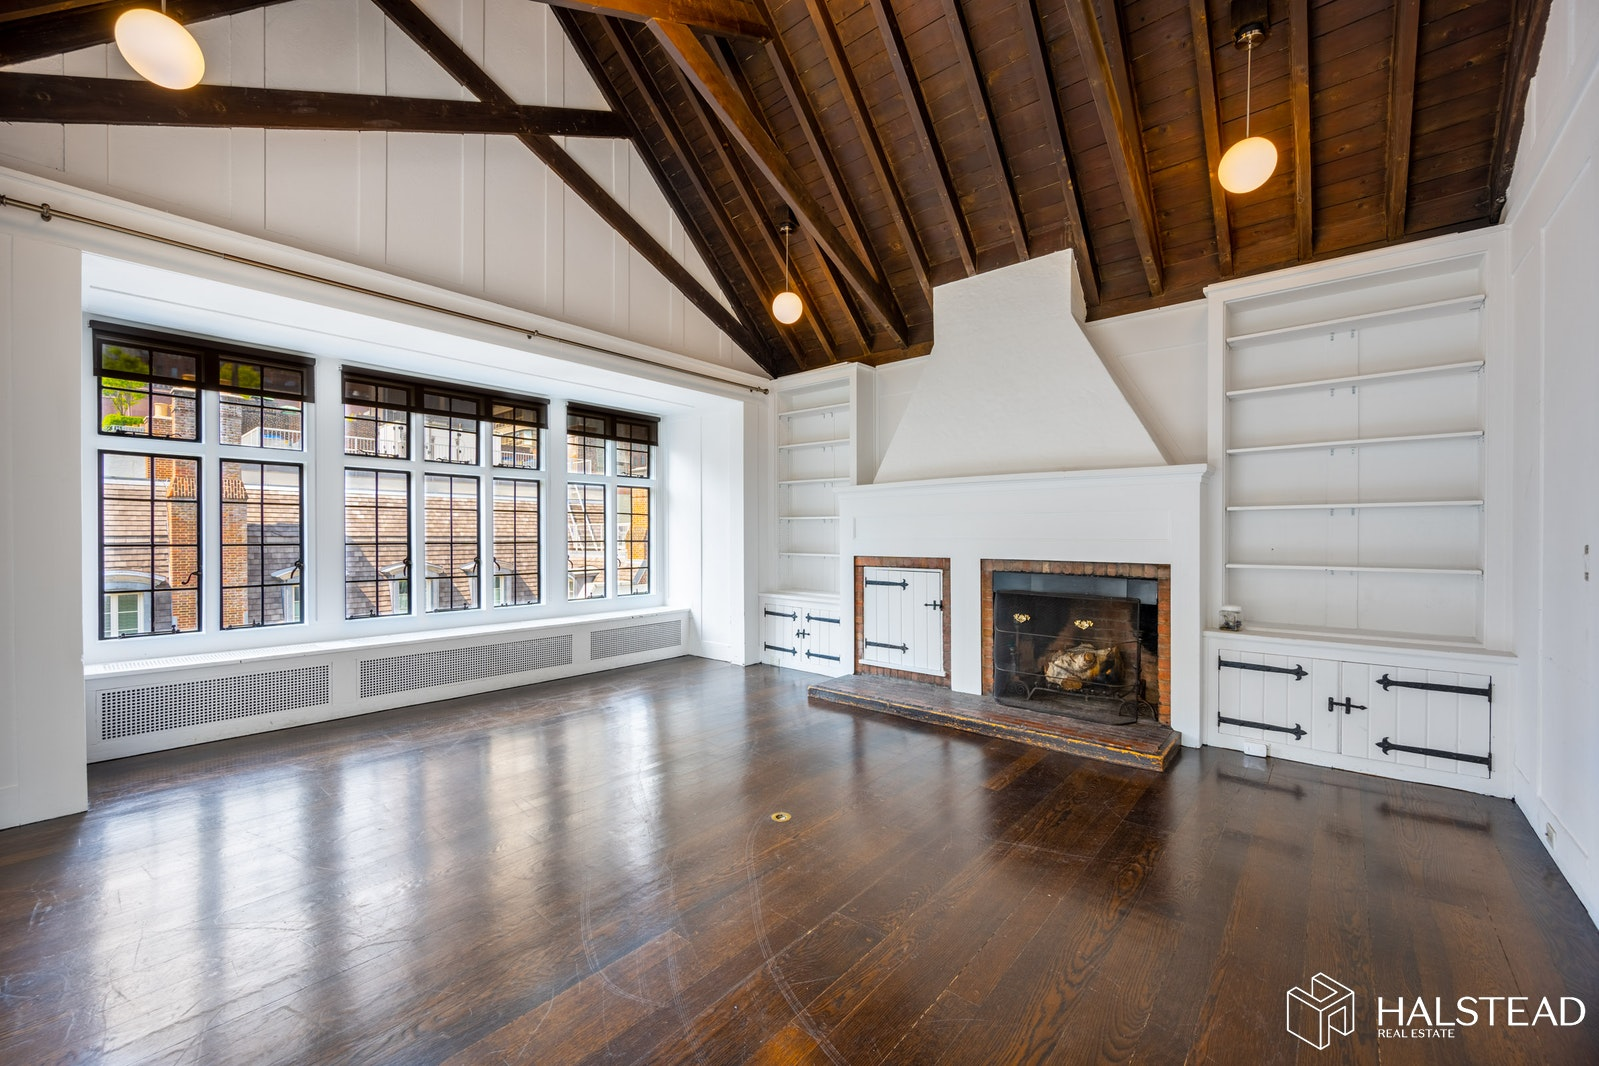 131 EAST 70TH STREET PENTHOUSE